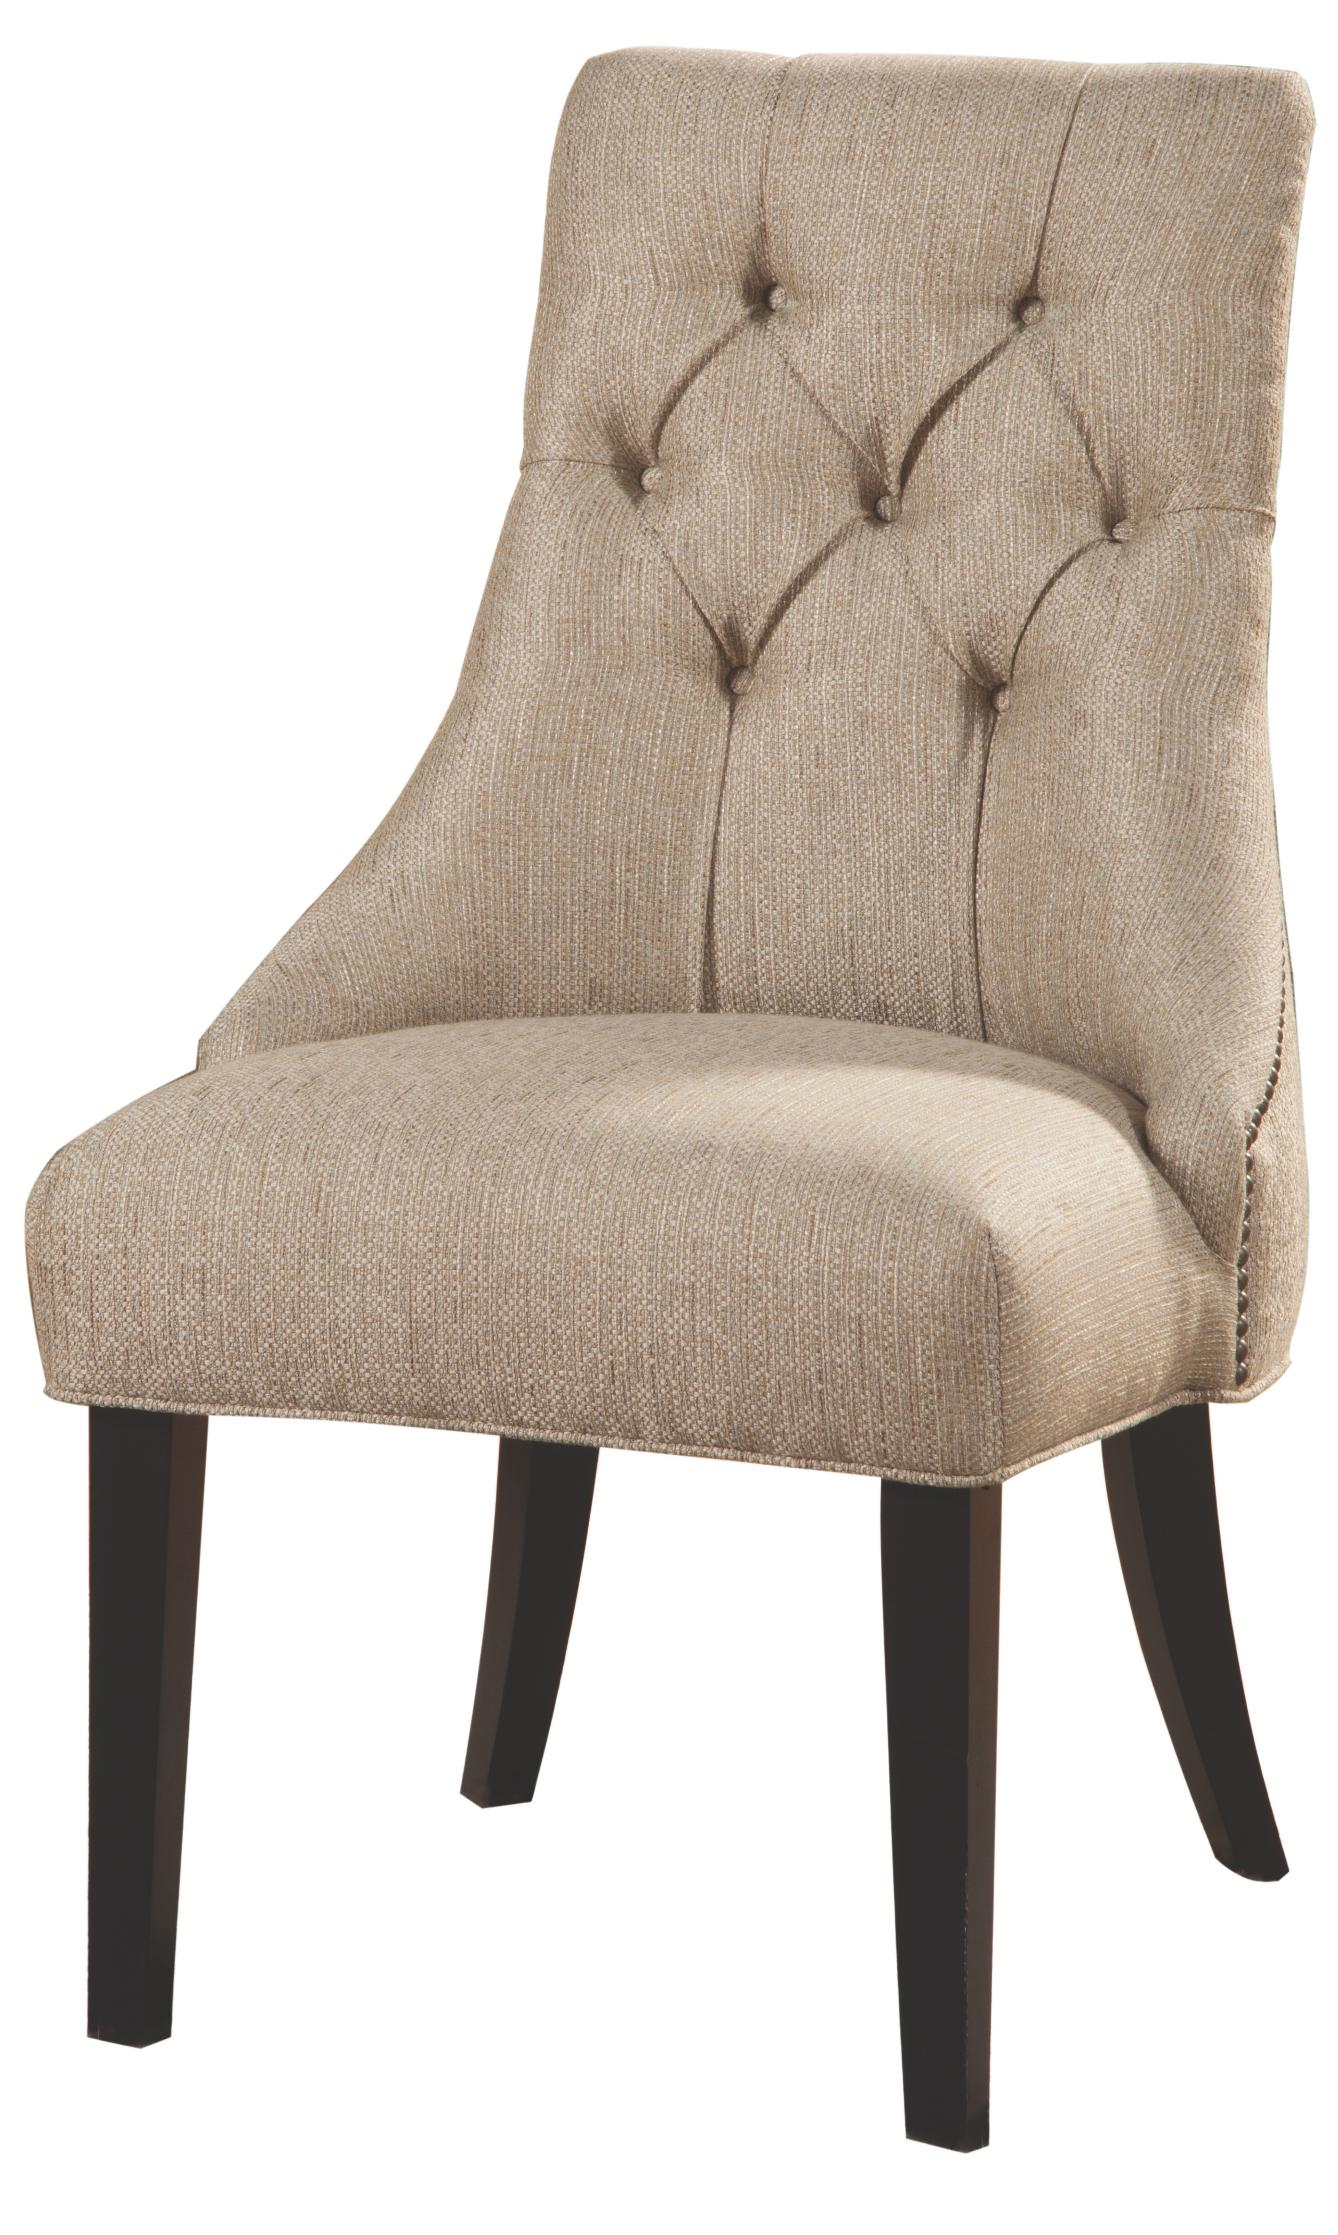 Coaster Accent Seating Side Chair - Item Number: 104033